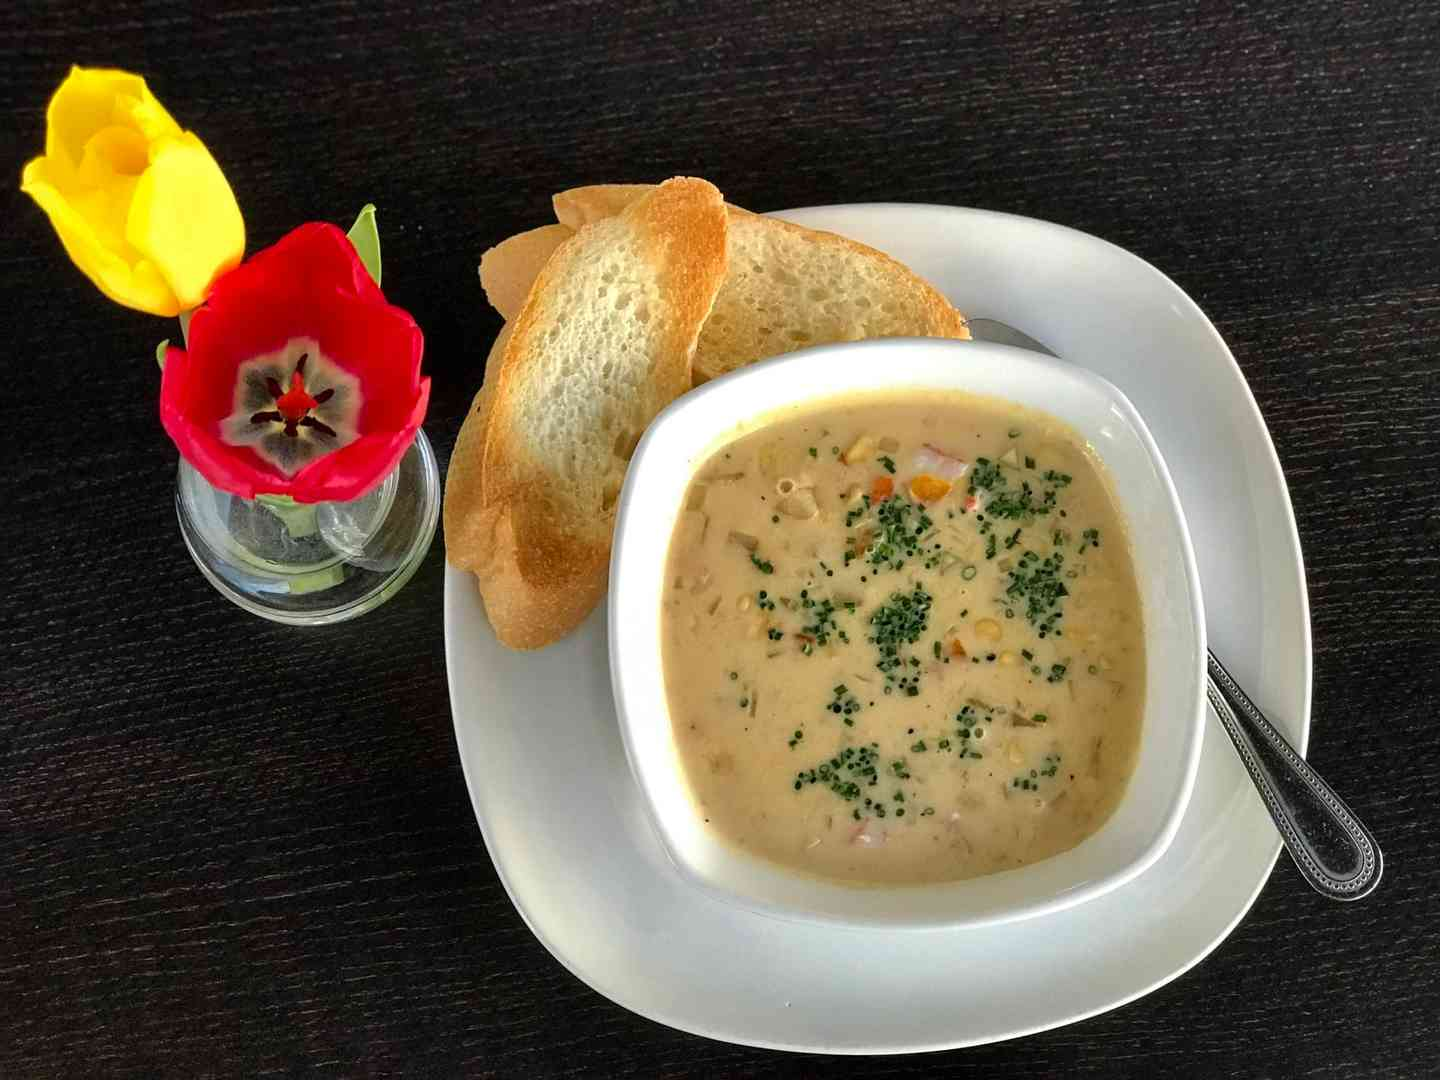 Cup of Lobster Chowder w/ Grilled Cheese Sandwich